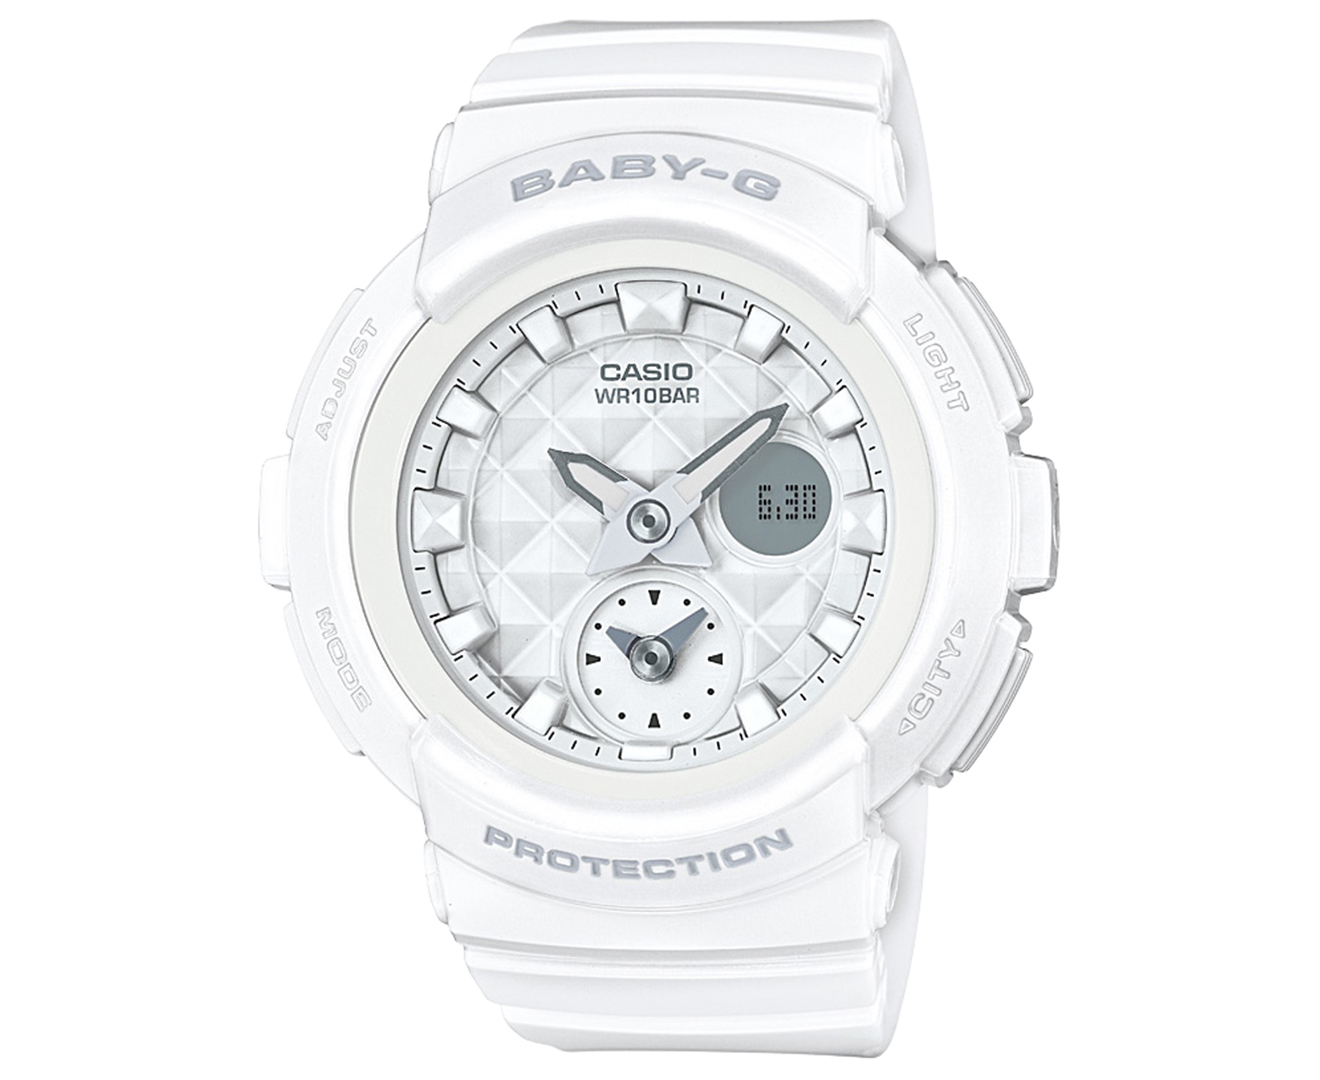 Casio Baby G Womens 45mm Bga195 7a Digital Watch White Great Ba 112 4a Pink Daily Deals At Australias Favourite Superstore Scoopon Shopping